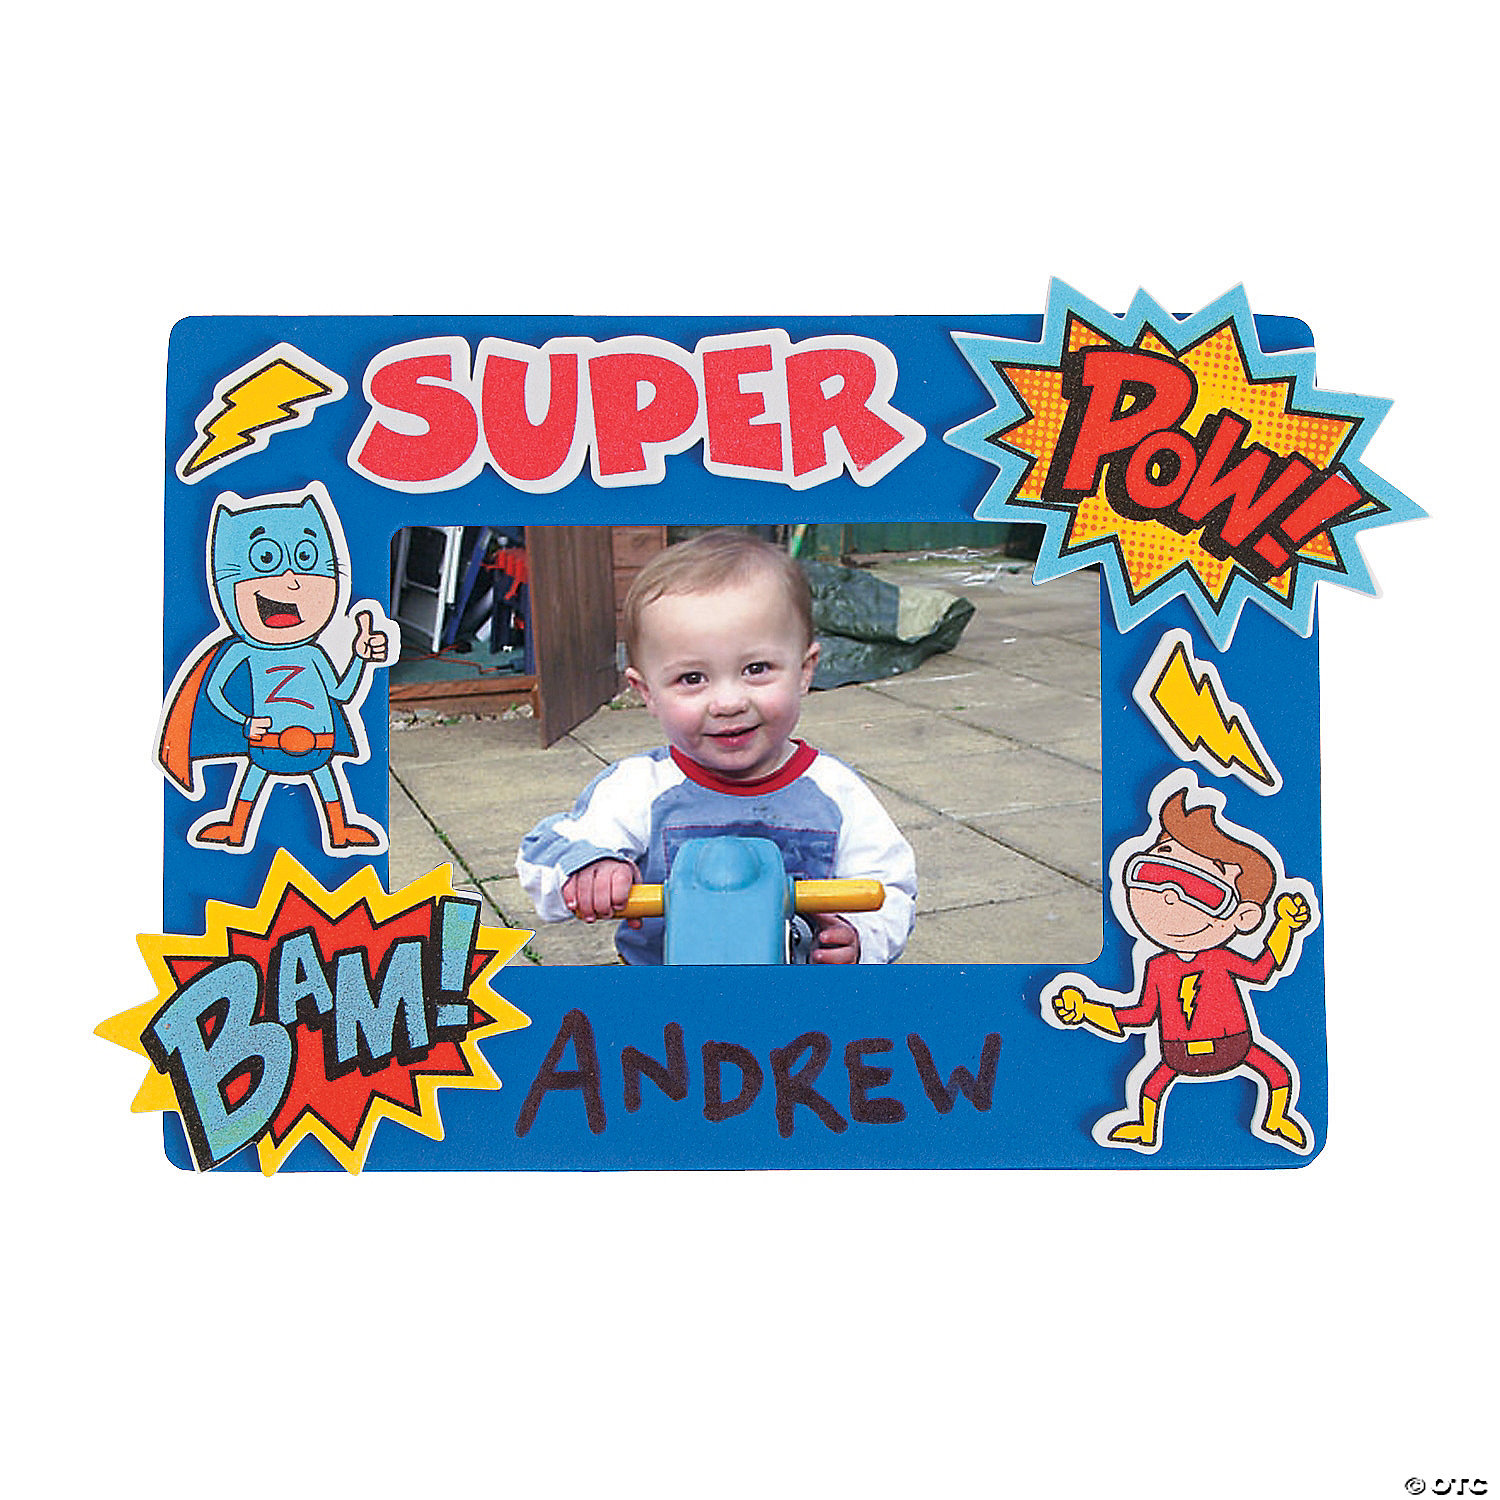 Photo crafts picture frame crafts photo magnets picture frame superhero picture frame craft kit jeuxipadfo Image collections